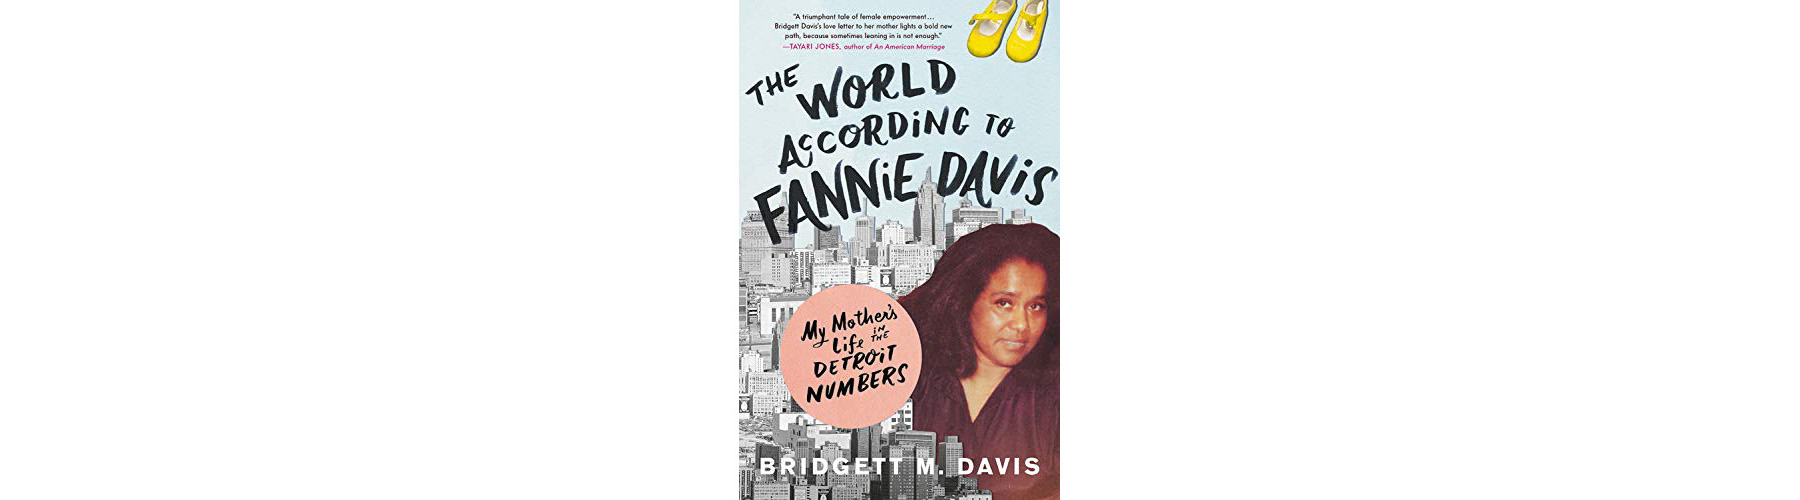 Cover of The World According to Fannie Davis, by Bridgett M. Davis